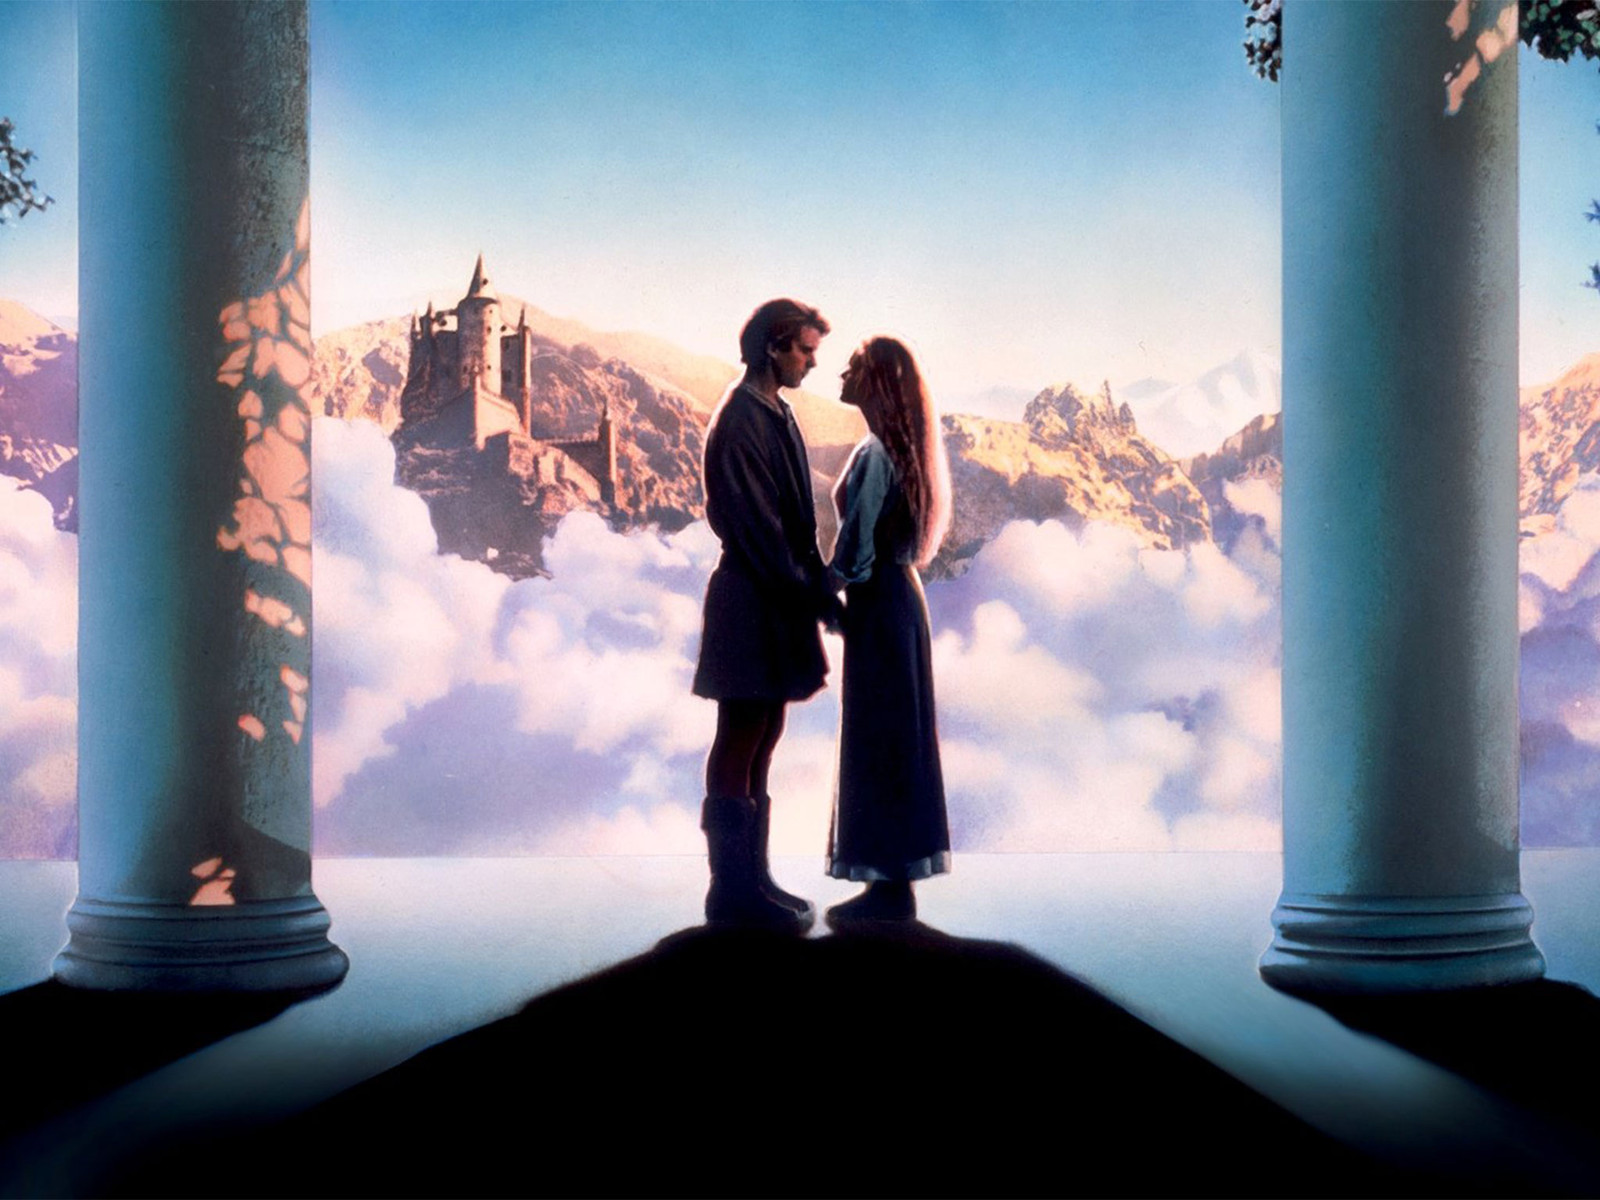 9. The Princess Bride - directed by Rob Reiner